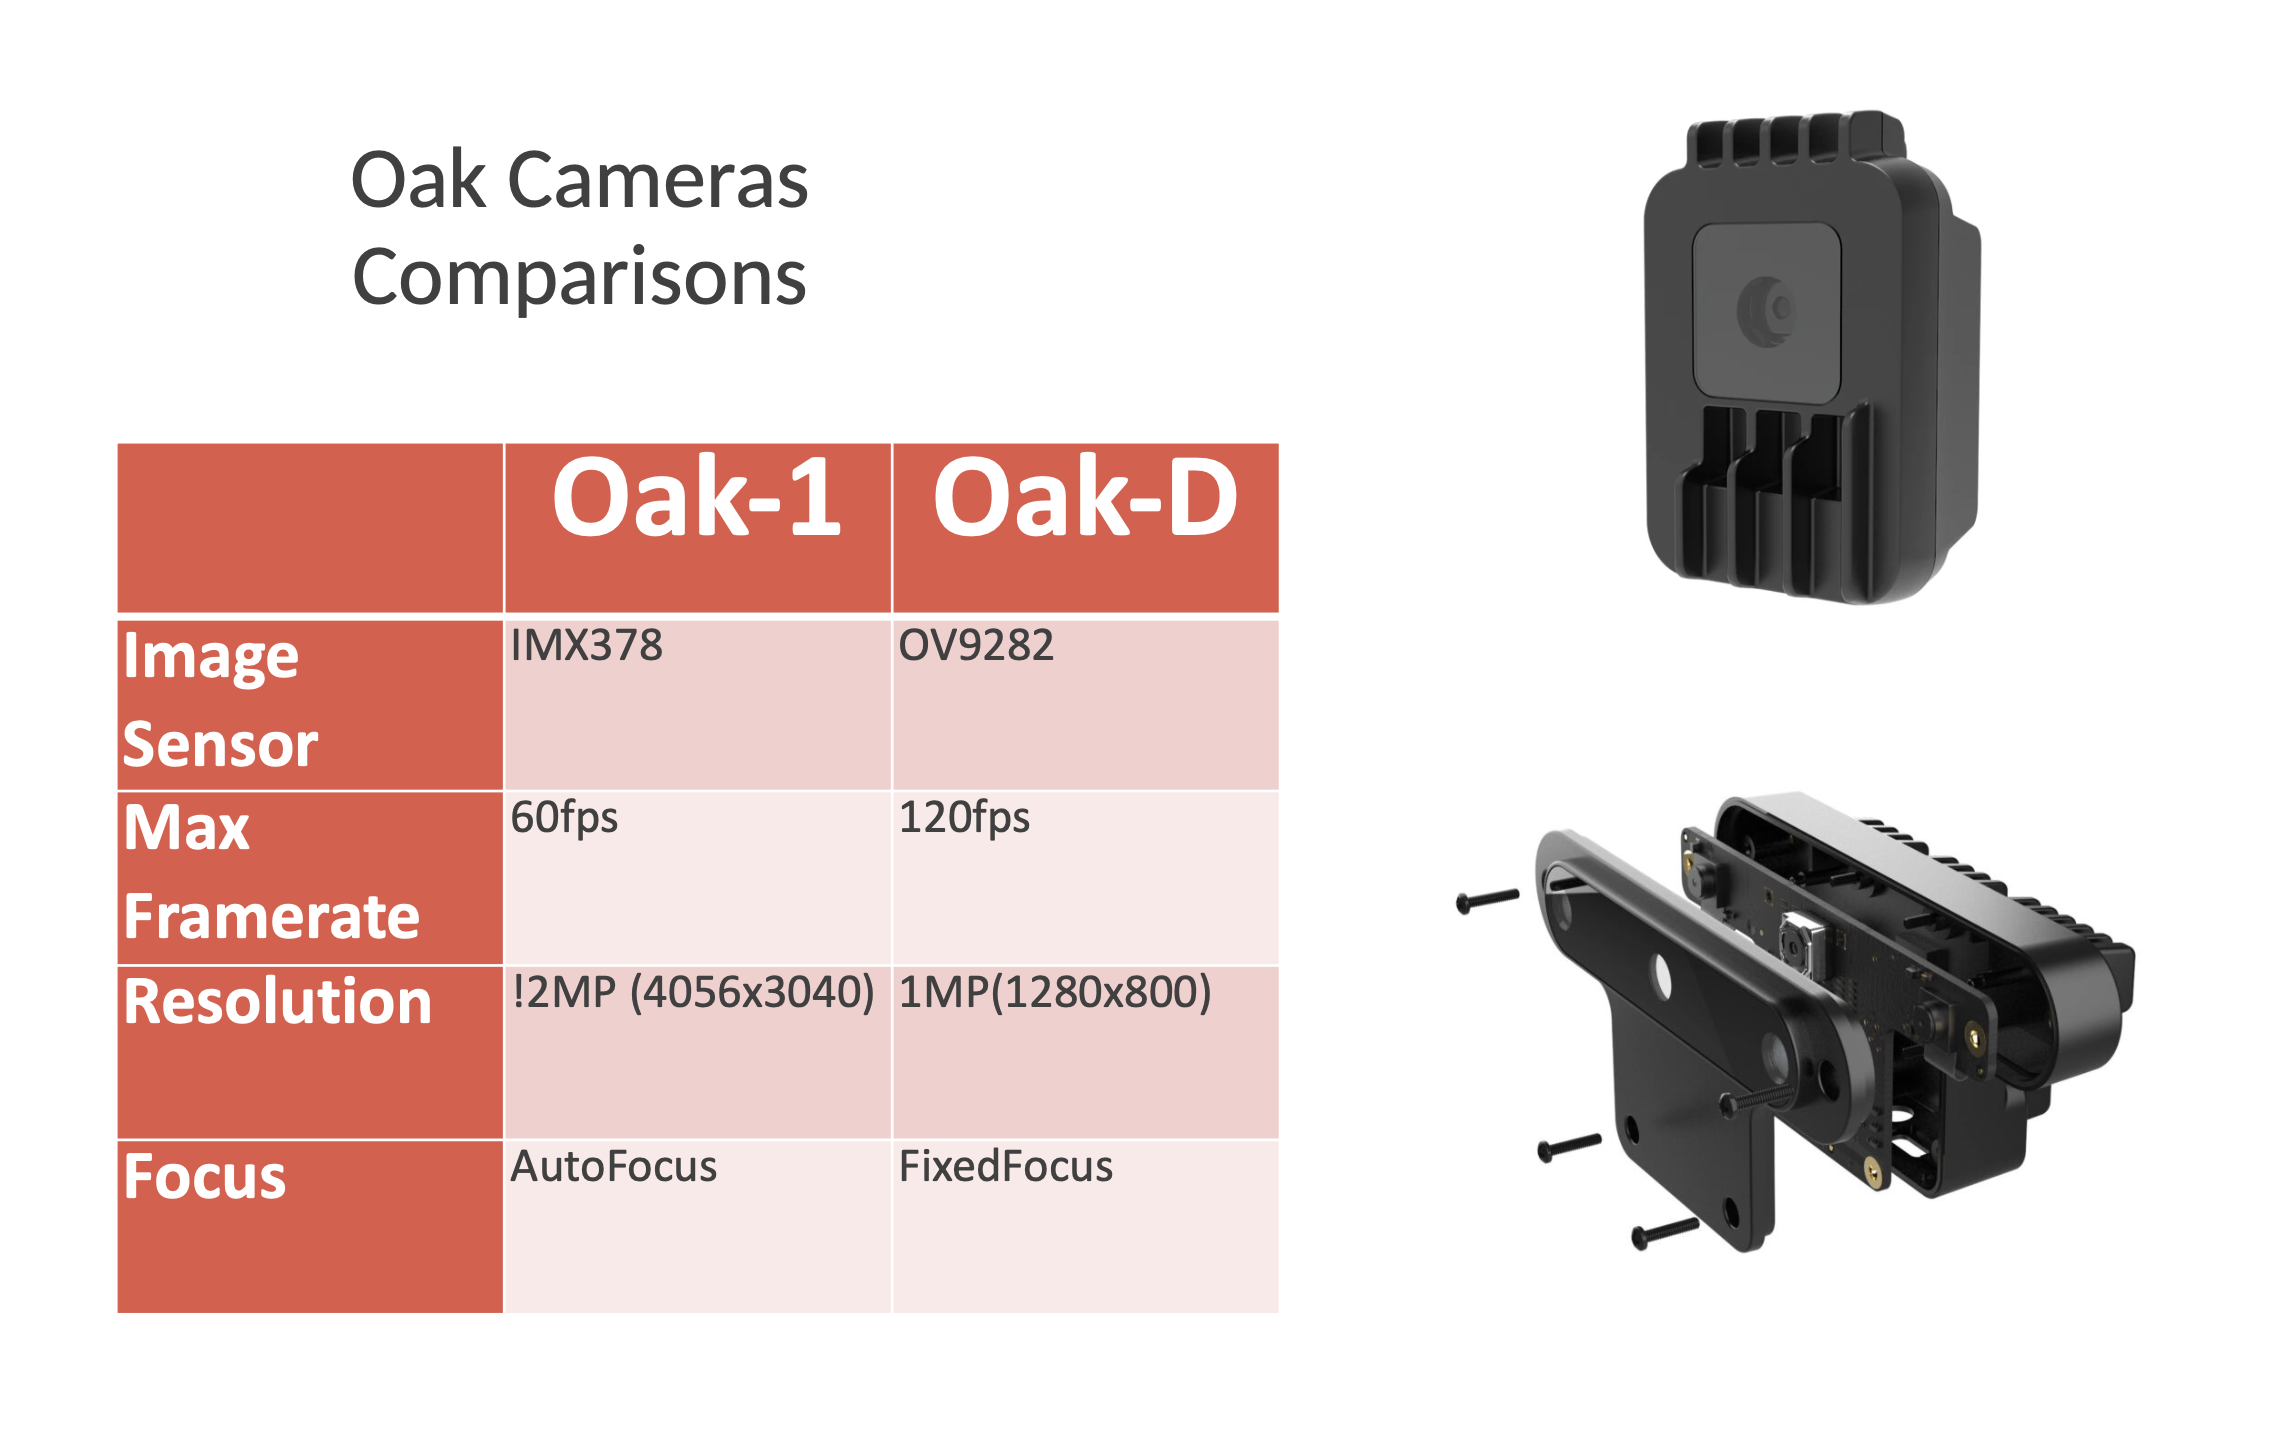 Oak Cameras Comparisons